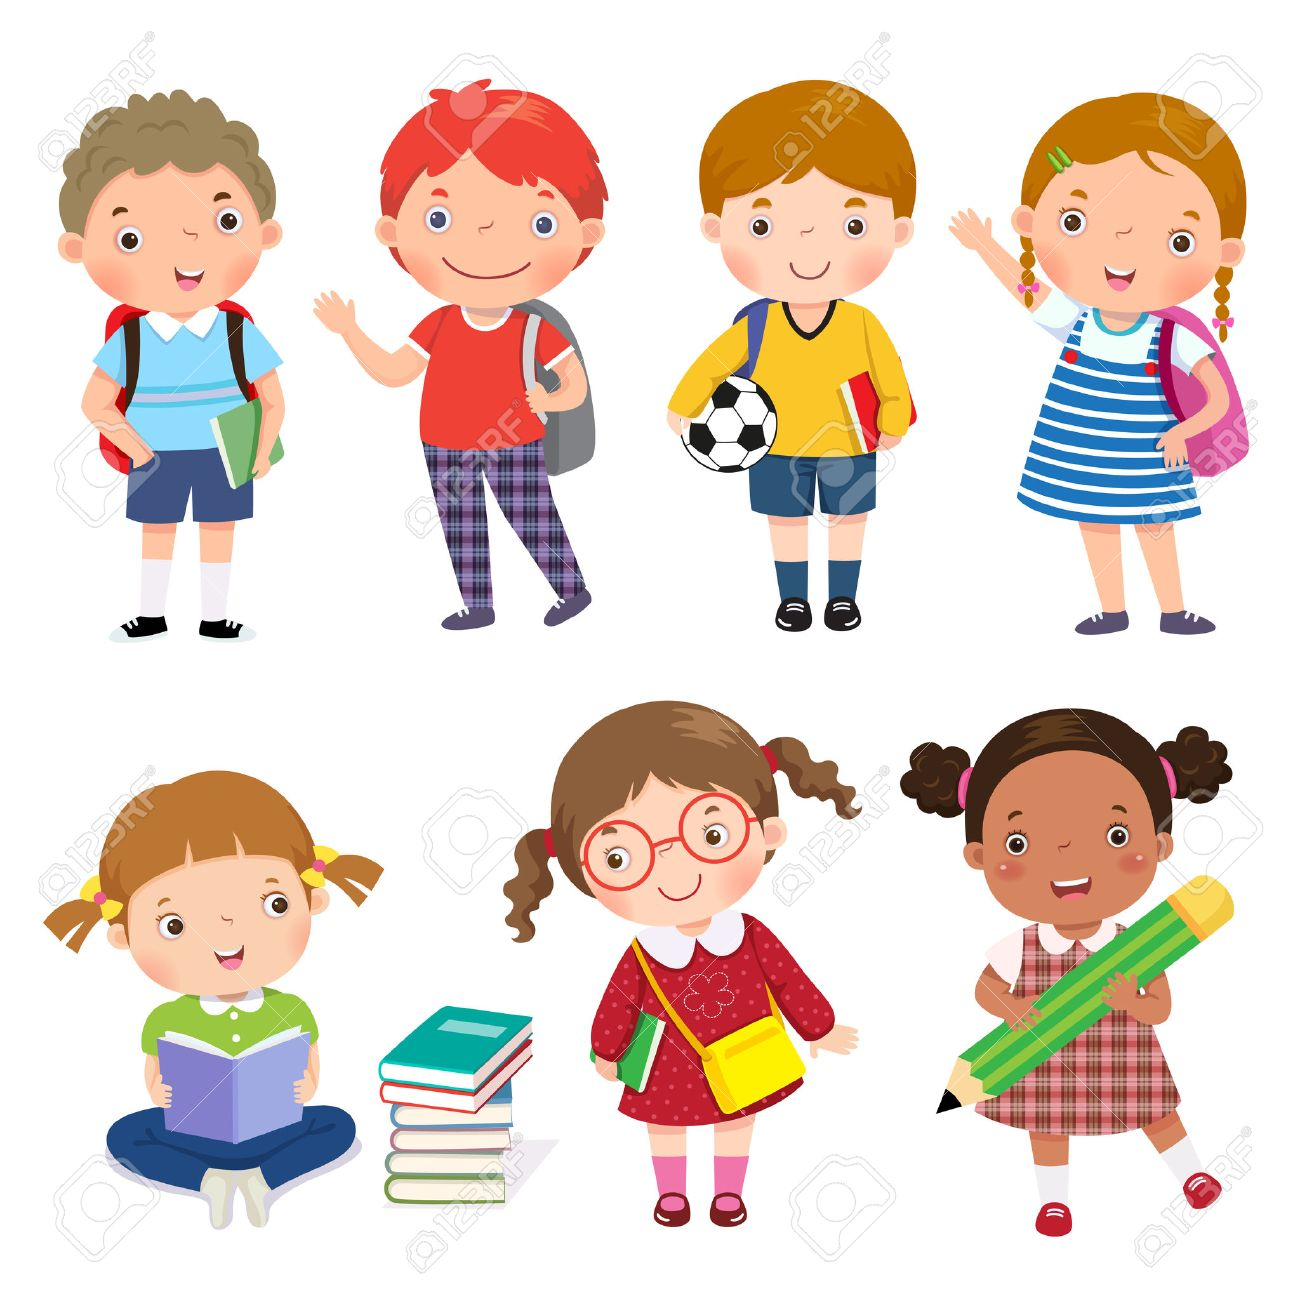 Back to school. Set of school kids in education concept. - 57753758